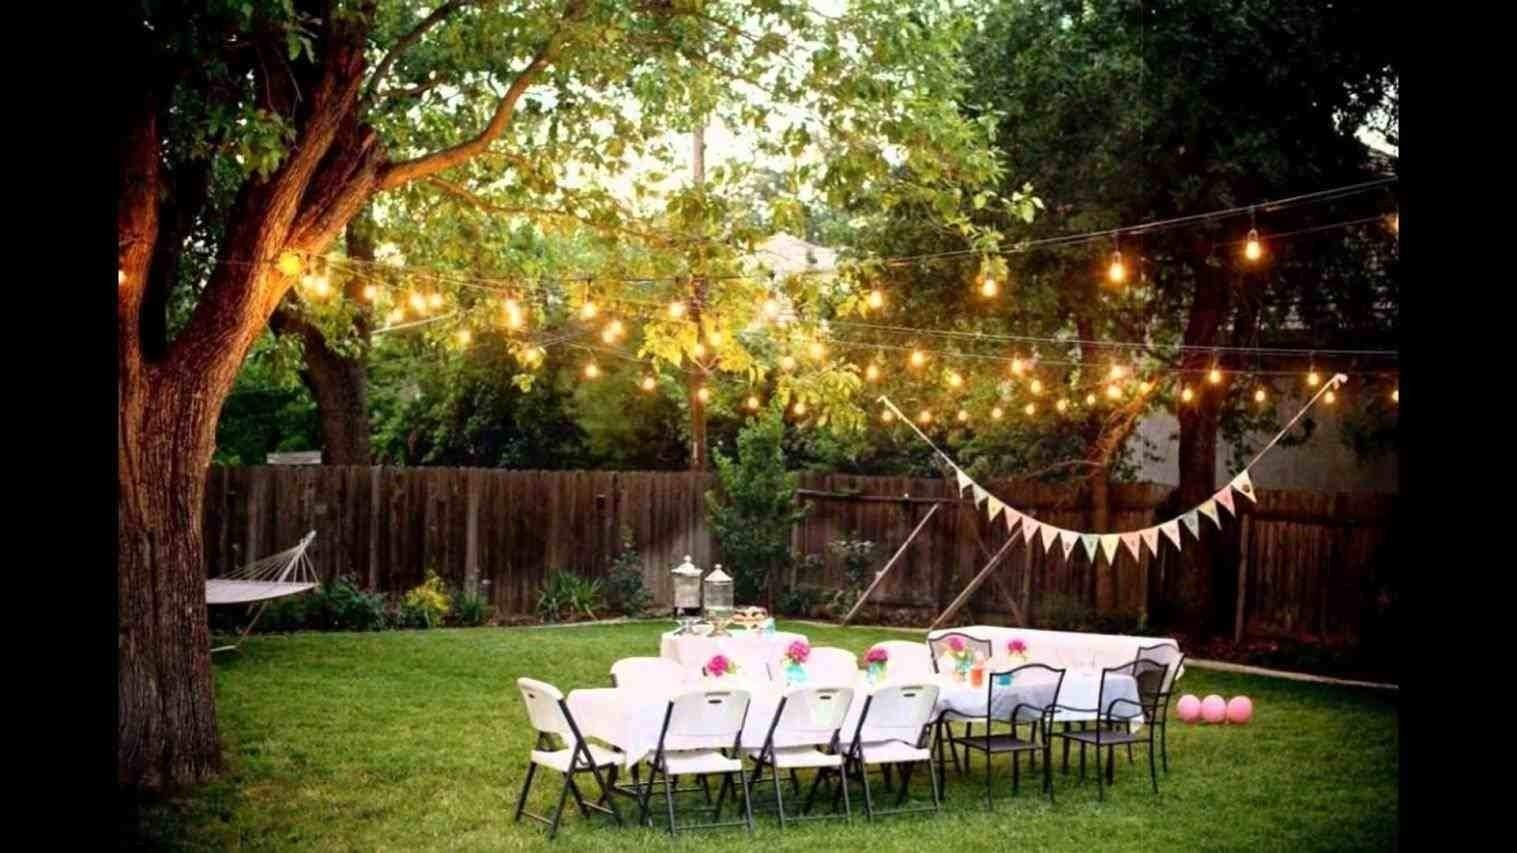 10 Attractive Ideas For A Small Wedding simple wedding ideas for a small wedding siudy 2020